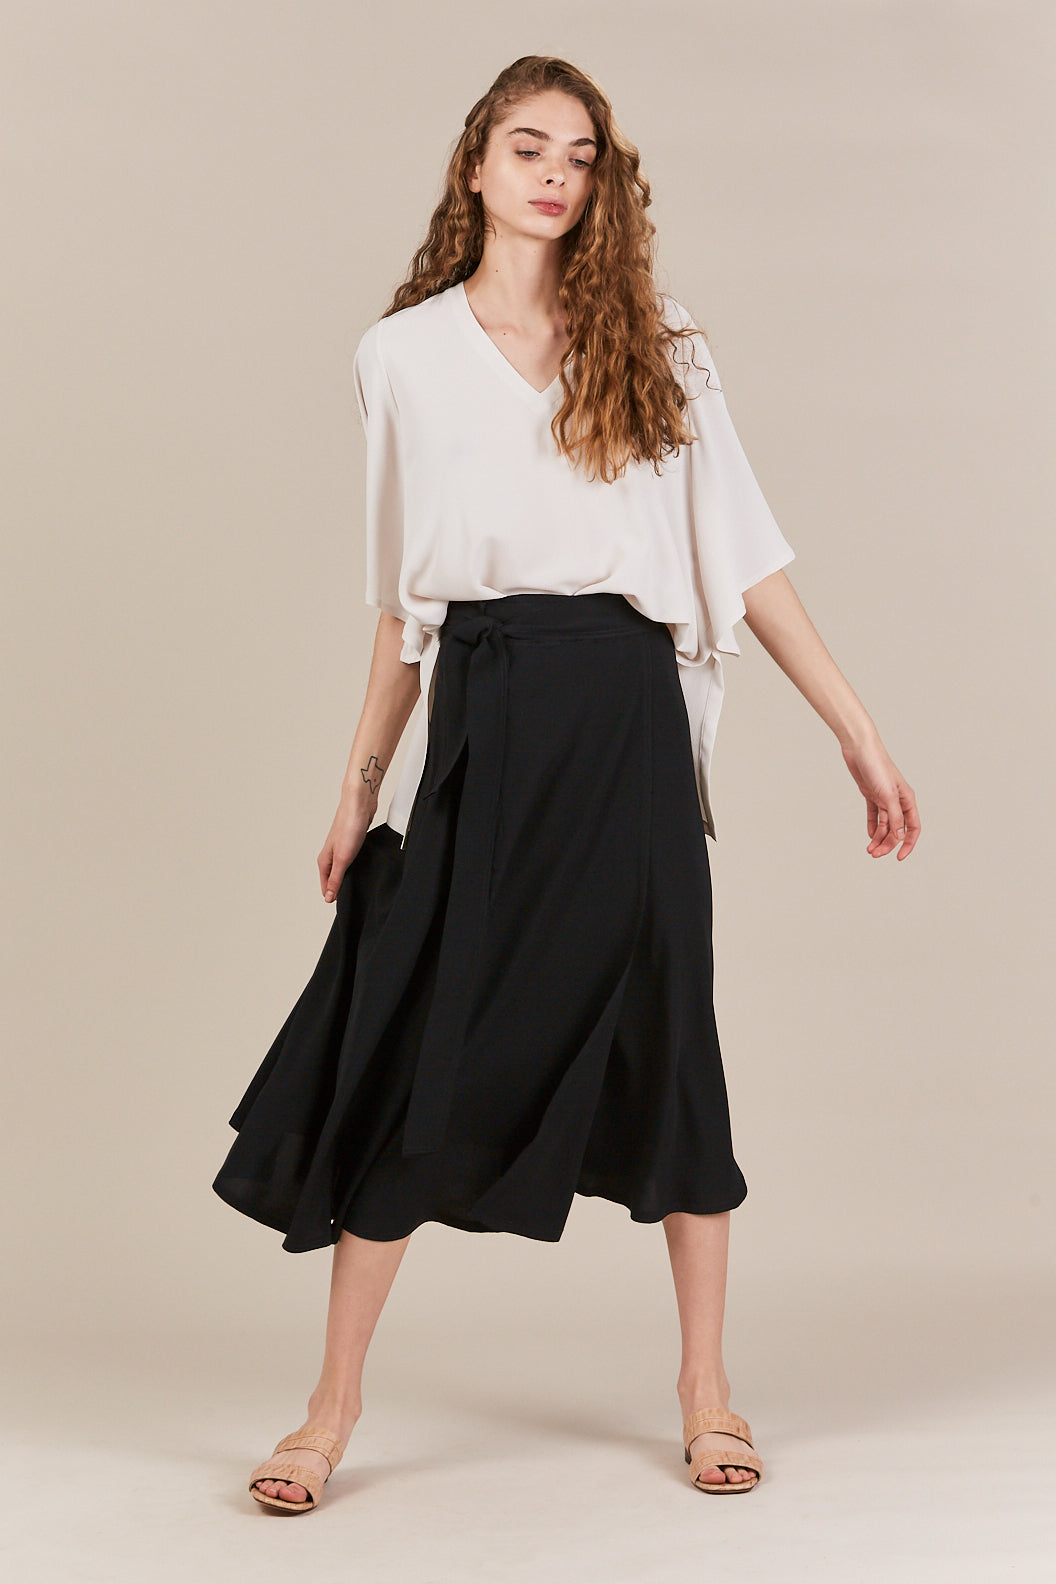 Veronique Leroy - wrap skirt